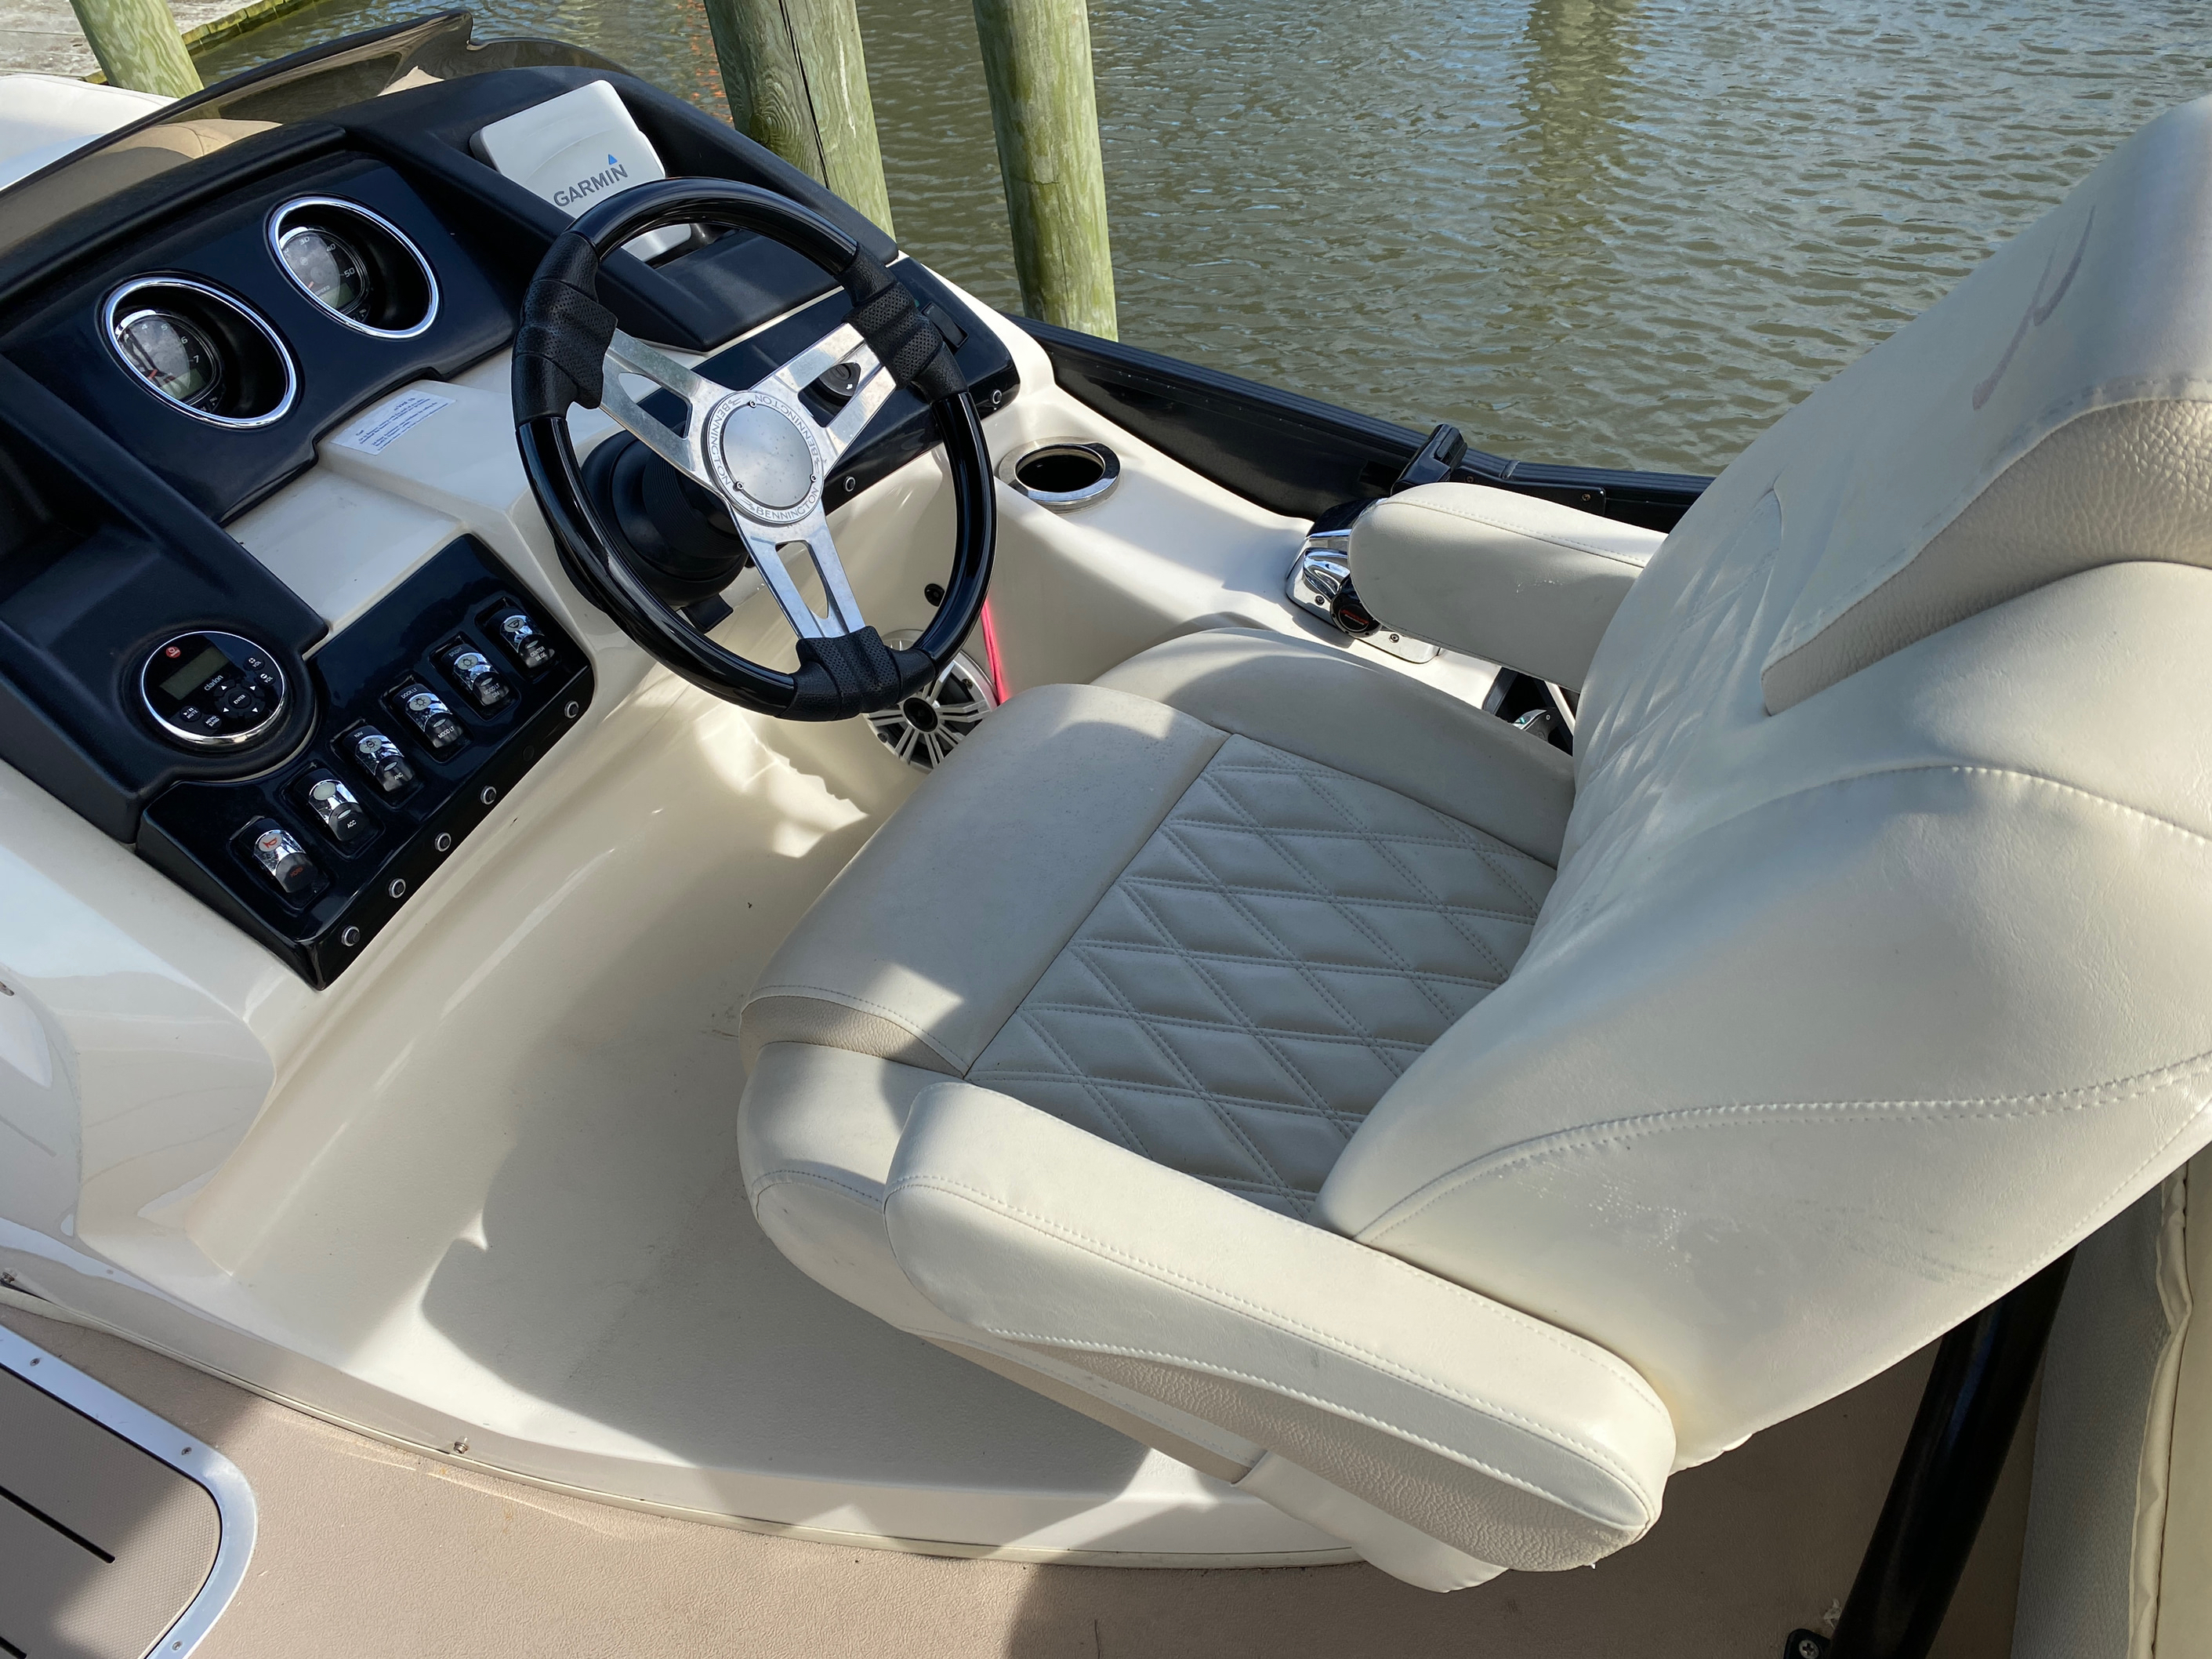 2014 Bennington boat for sale, model of the boat is 2375 GCW Sport Arch & Image # 5 of 13